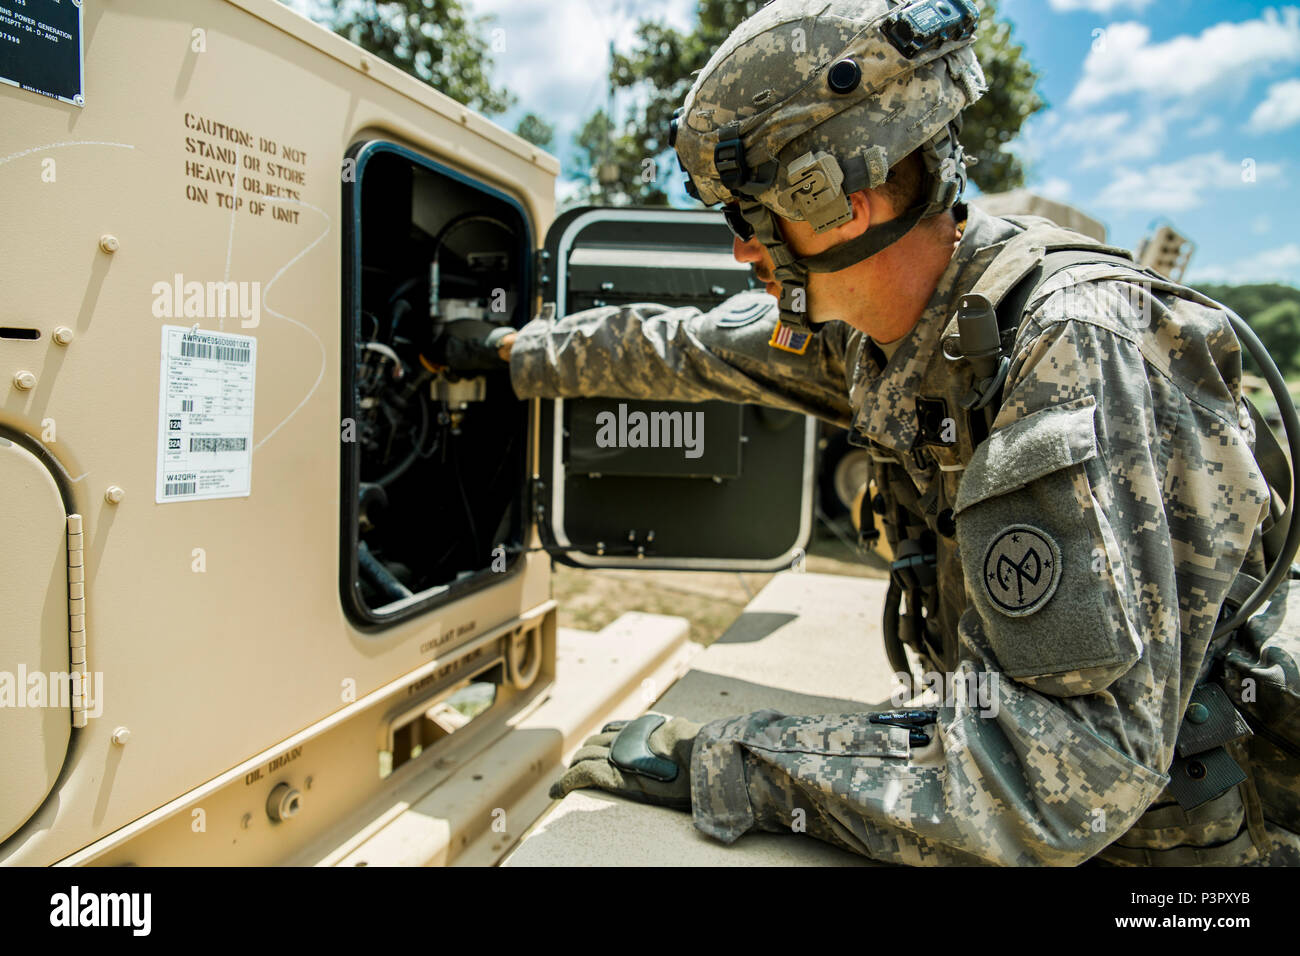 U.S. Army Sgt. Adam Lamb, a generator mechanic assigned to Echo Company, 427th Brigade Support Battalion, New York Army National Guard, works on a generator at the Joint Readiness Training Center, Ft. Polk, La., July 26, 2016. Approximately 3,000 Soldiers from New York joined 2,000 other state Army National Guard units, active Army and Army Reserve troops as part of the 27th Infantry Brigade Combat Team task force. The Soldiers are honing their skills and practicing integrating combat operations ranging from infantry troops engaging in close combat with an enemy to artillery and air strikes, J Stock Photo